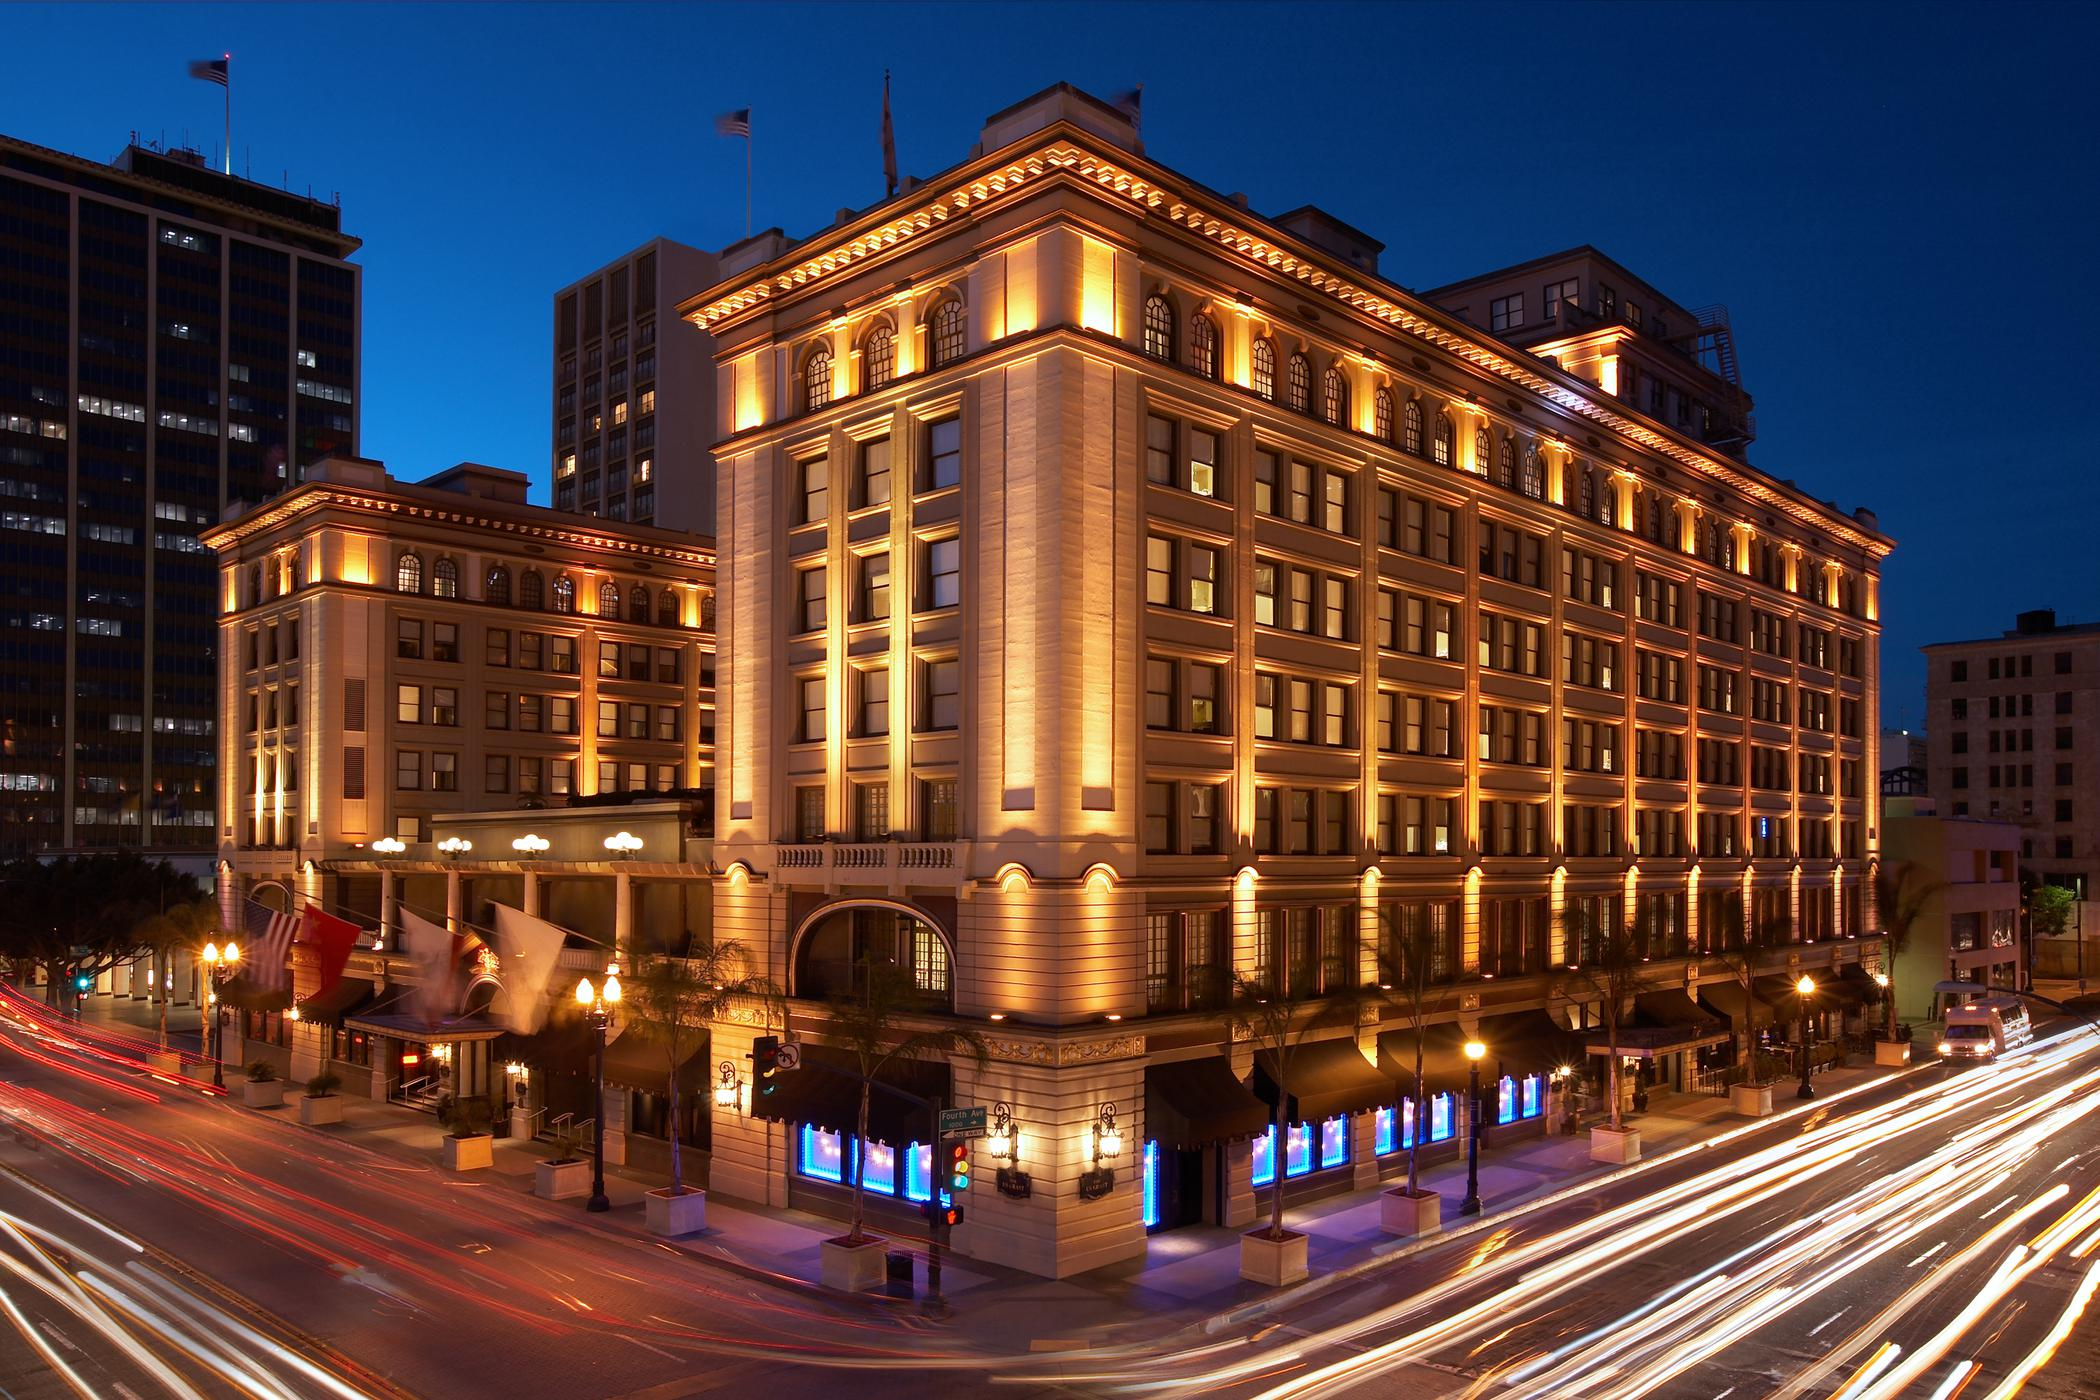 Hotel Grand President Exclusive Presidential Hotel Suites In San Diego